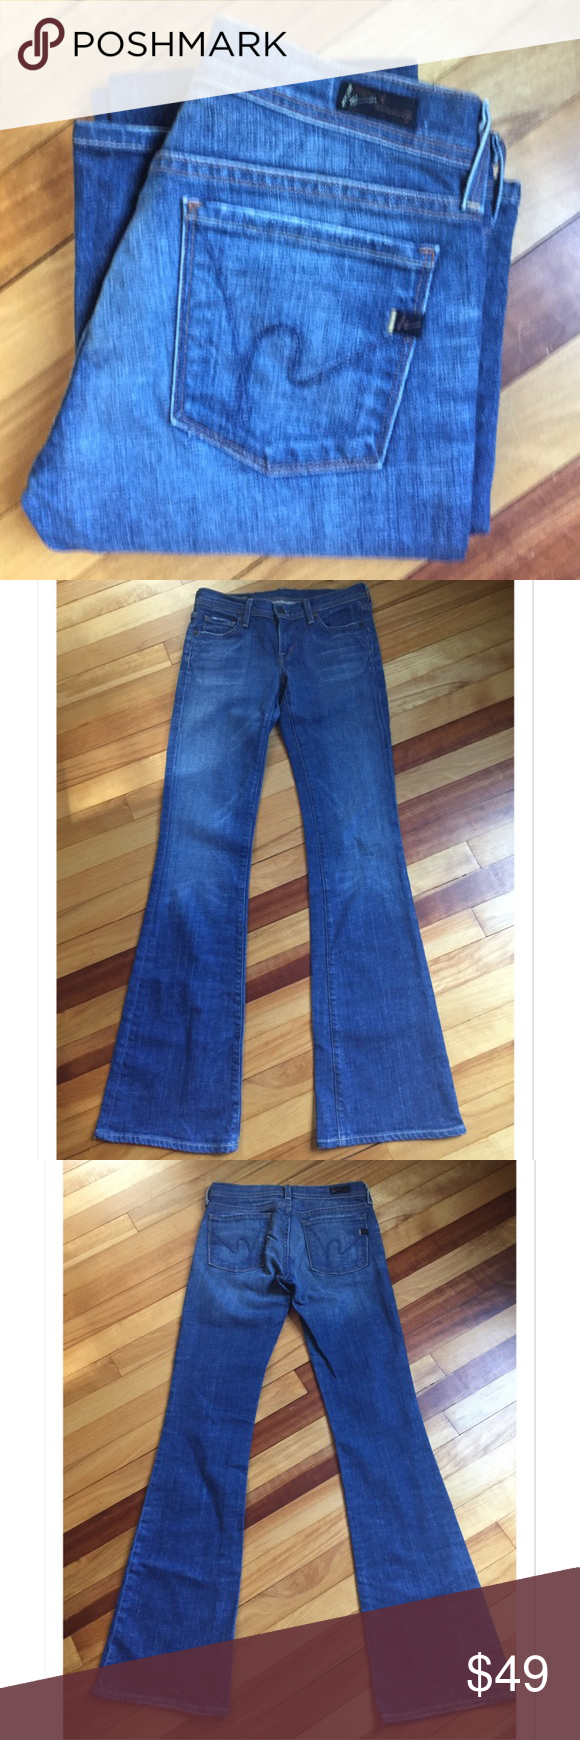 Selling this Citizens of Humanity Ingrid Low Waist Flare Jeans on Poshmark! My username is: davias_closet. #shopmycloset #poshmark #fashion #shopping #style #forsale #Citizens of Humanity #Denim